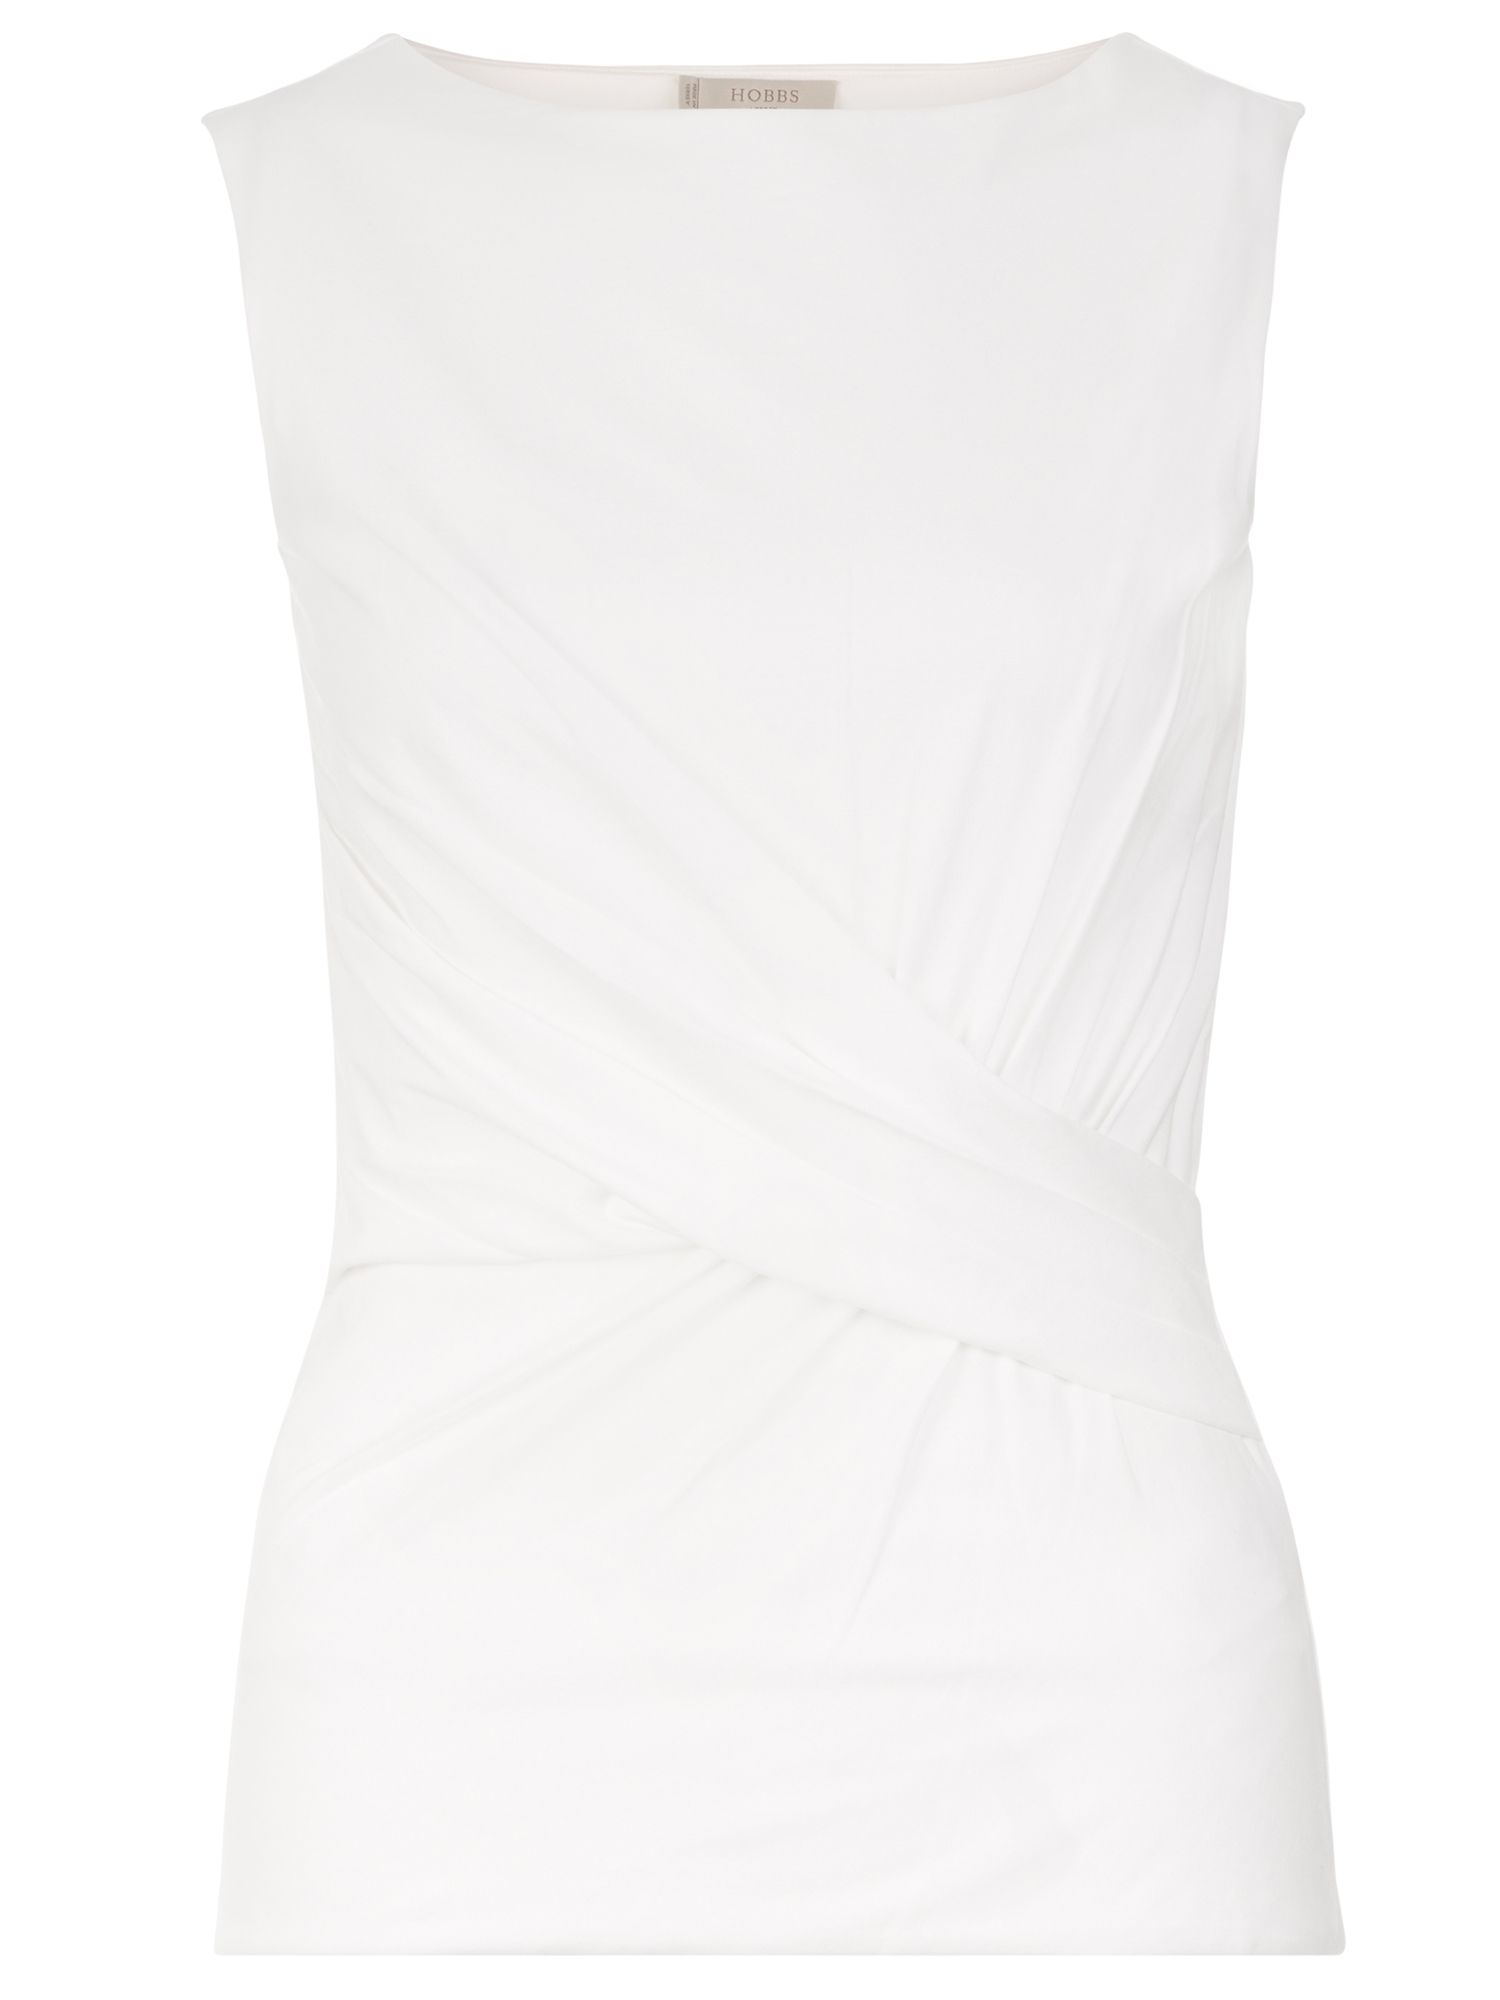 Hobbs Sian Gathered Top, White